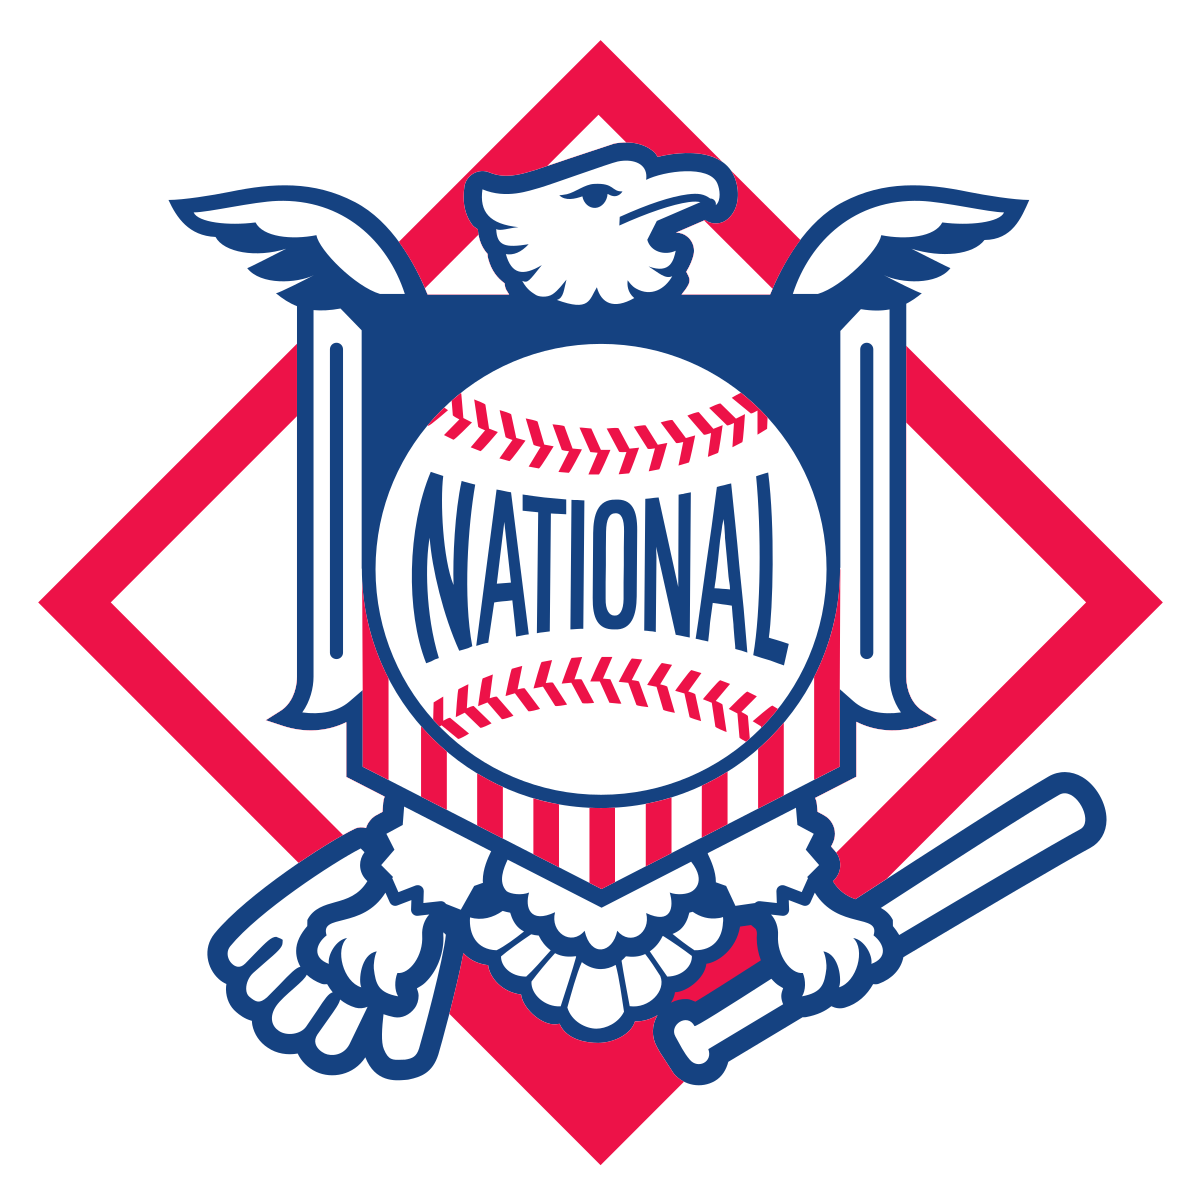 Baseball pennant clipart png clipart transparent download National League - Wikipedia clipart transparent download